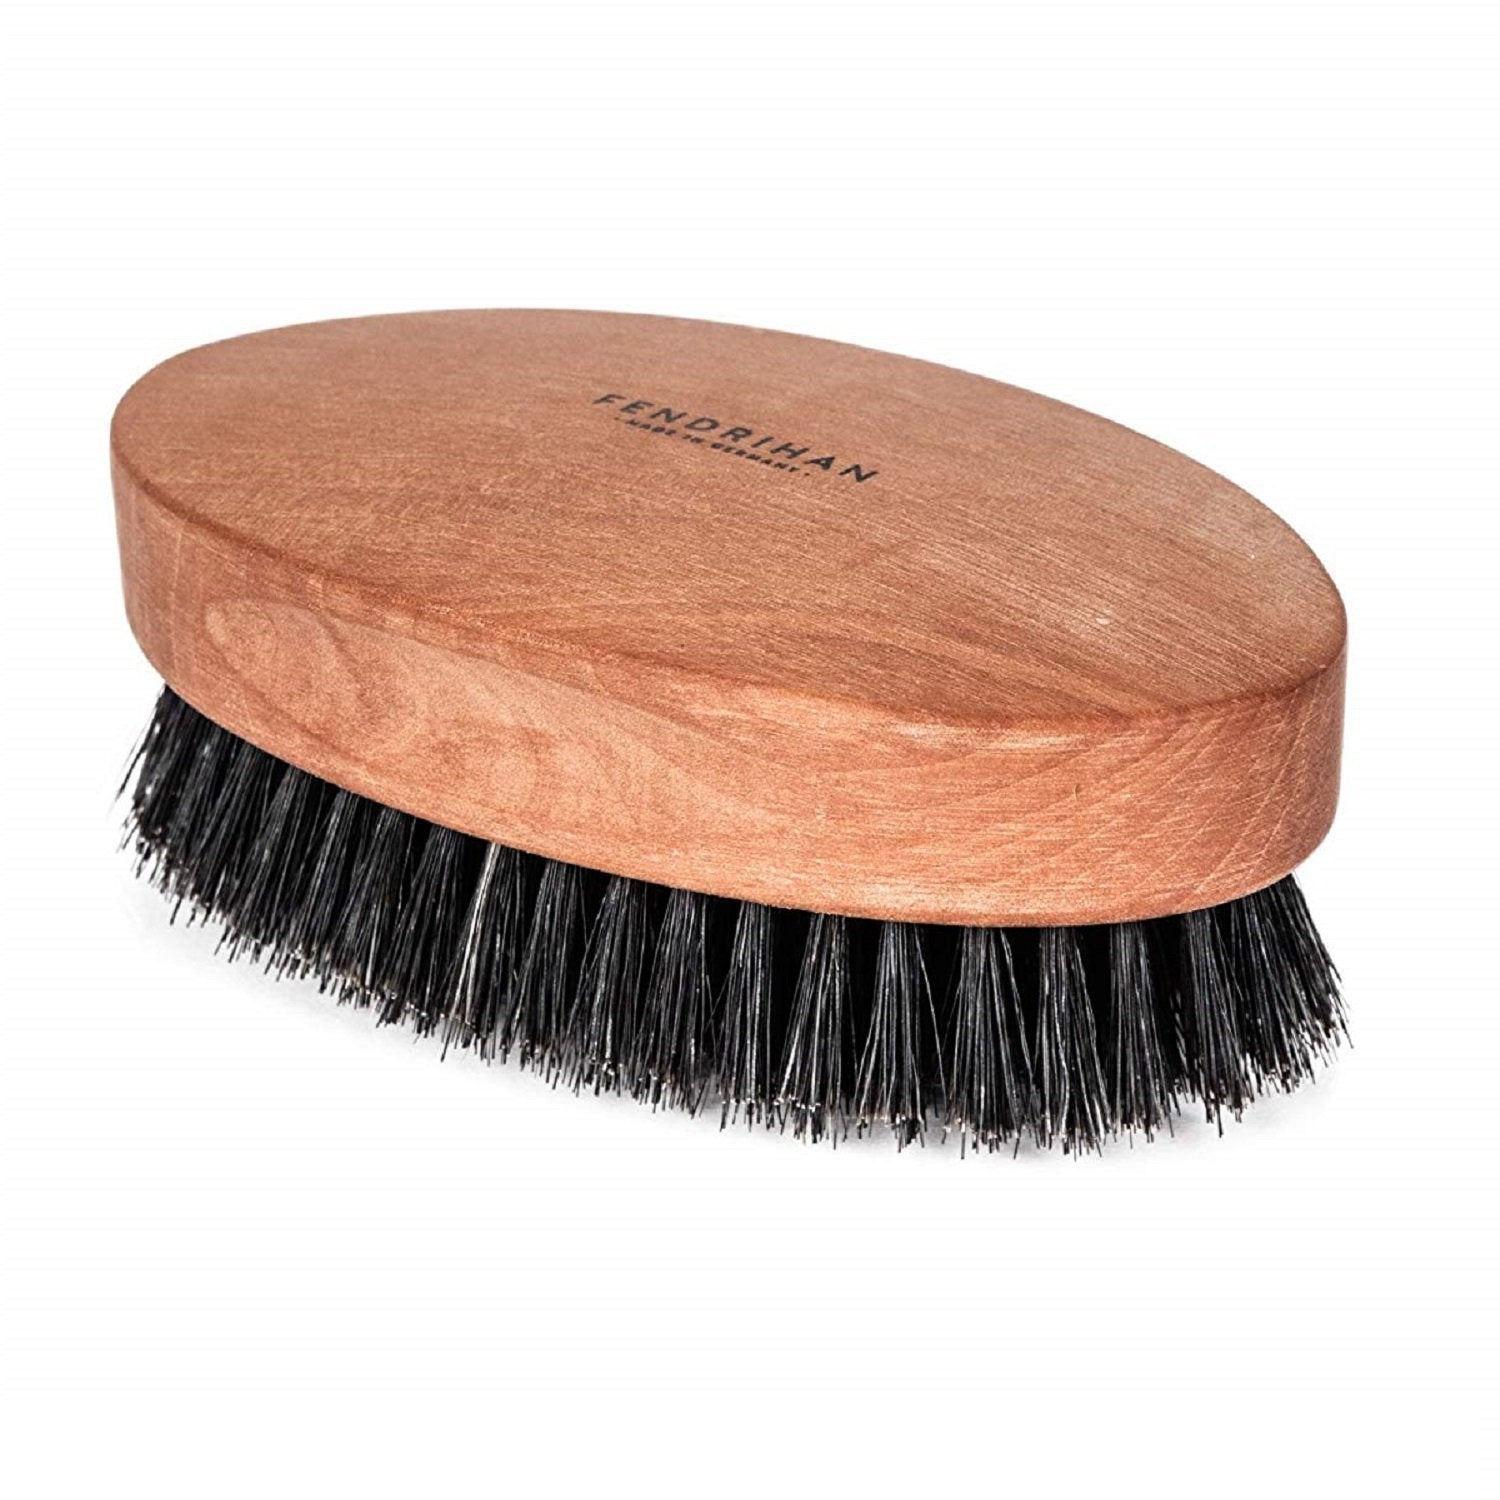 Soft Boar Bristle and Pear Wood Military Hair Brush, Made in Germany